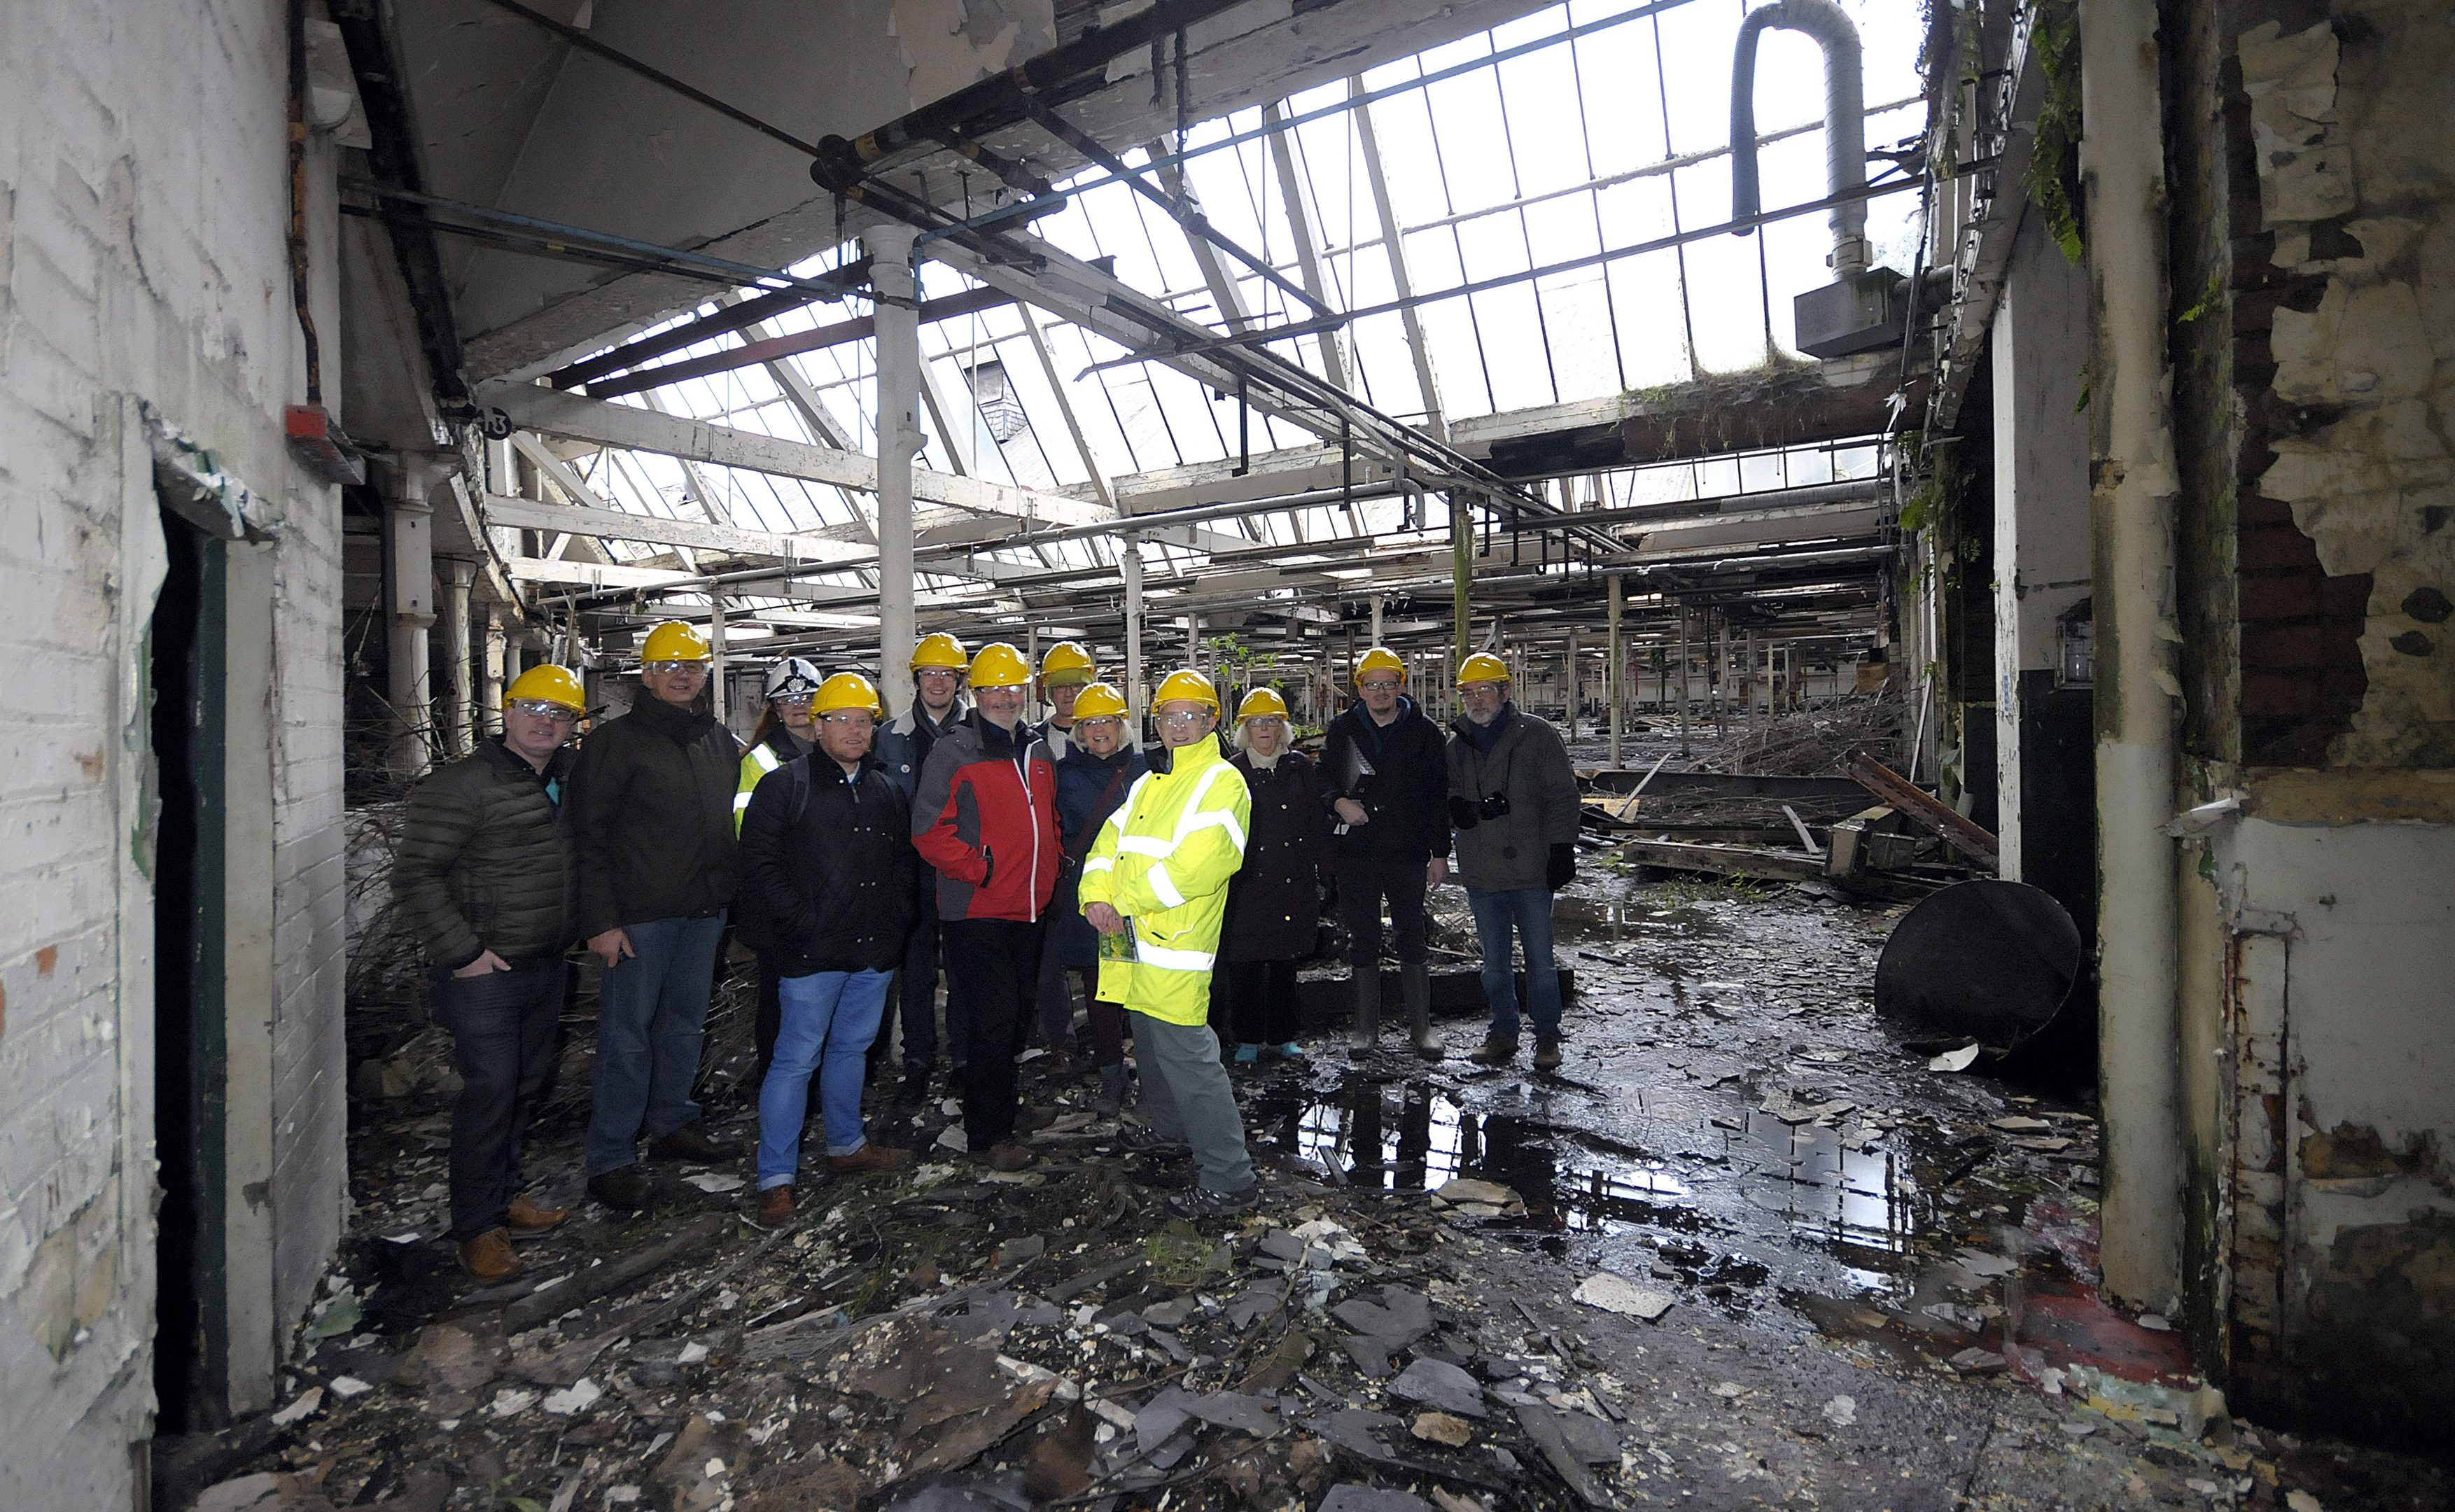 The group gets its first glimpse of the dereliction.